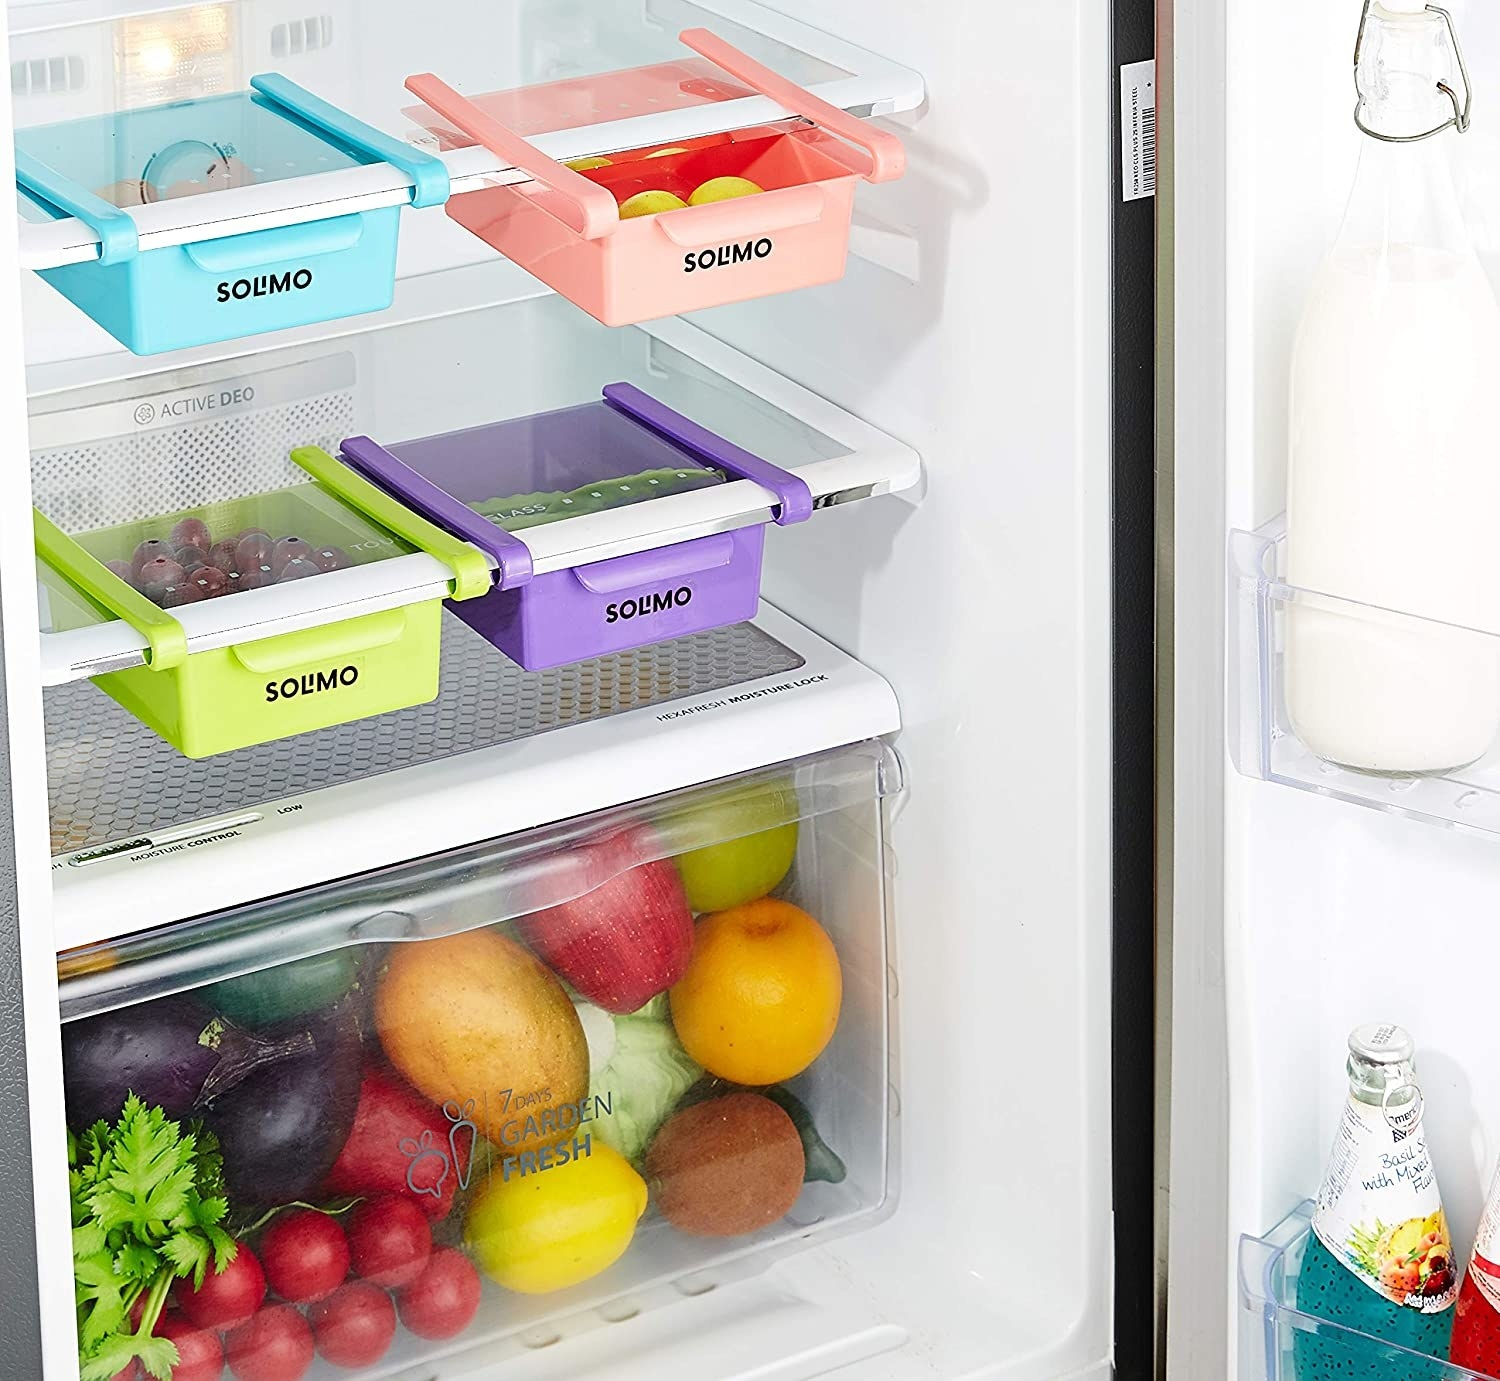 A set of fridge organisers in a fridge with vegetables in them